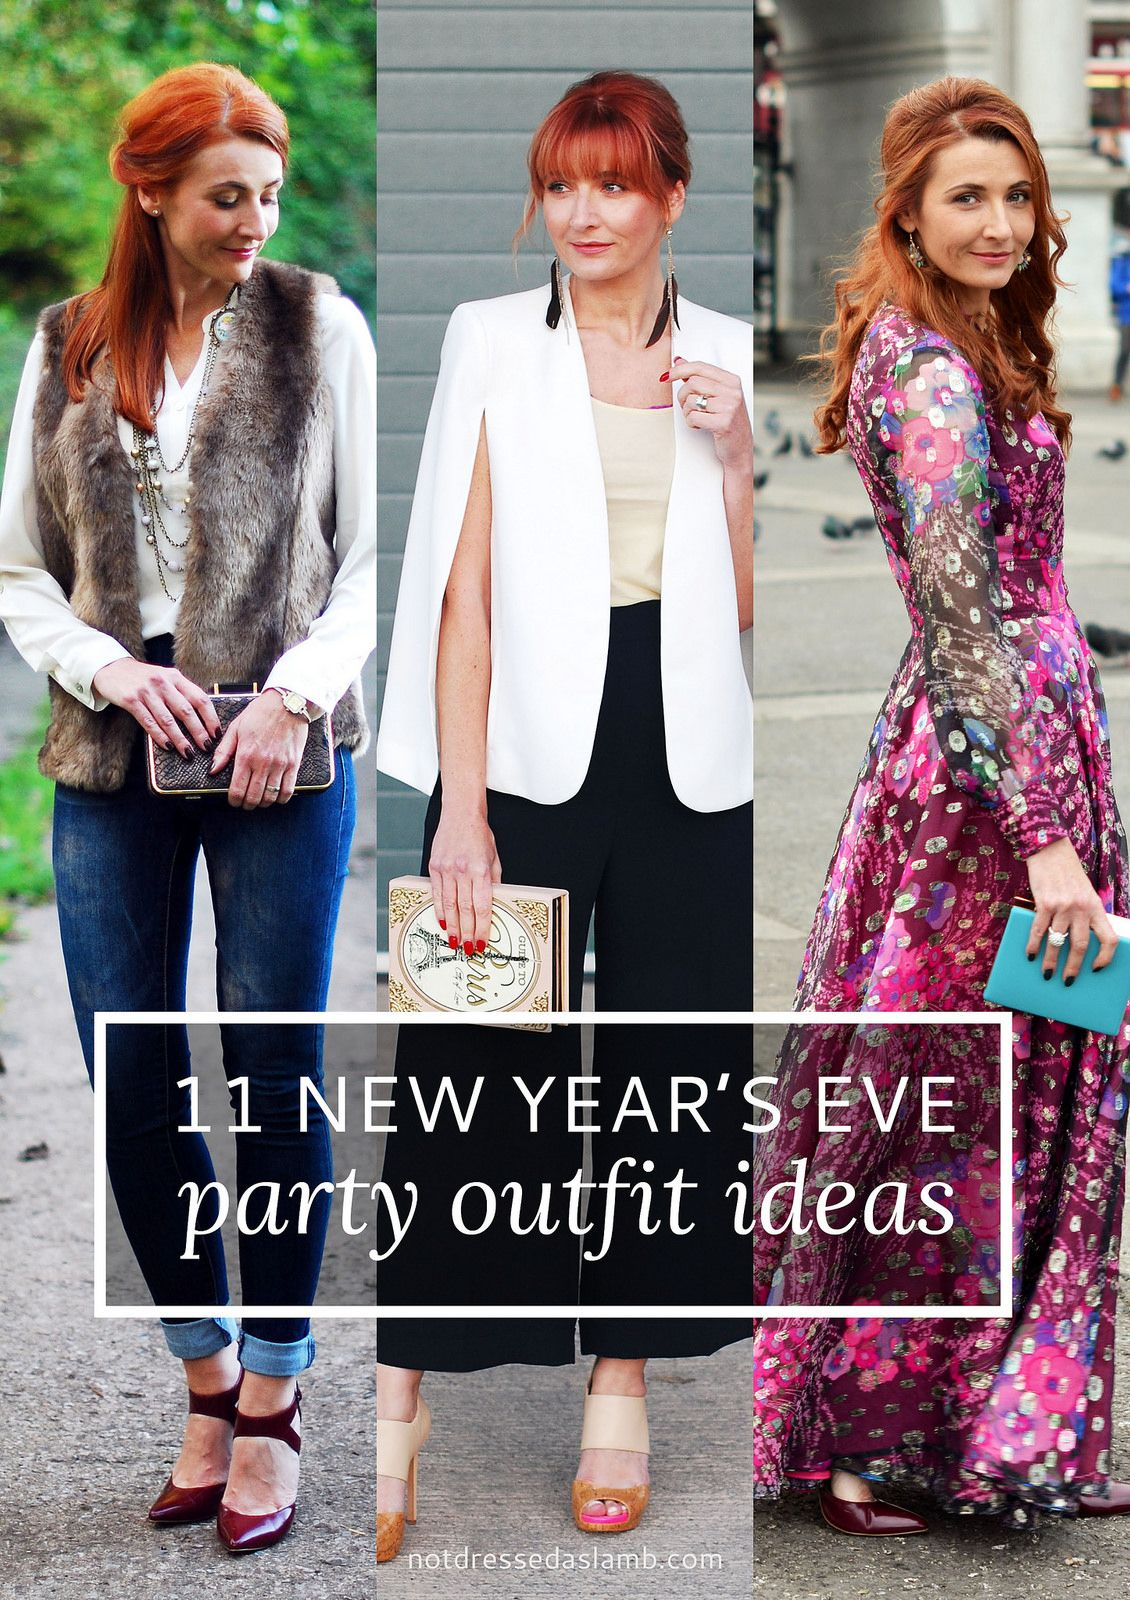 11 New Year's Eve Party Outfit Ideas For Over 40 Women